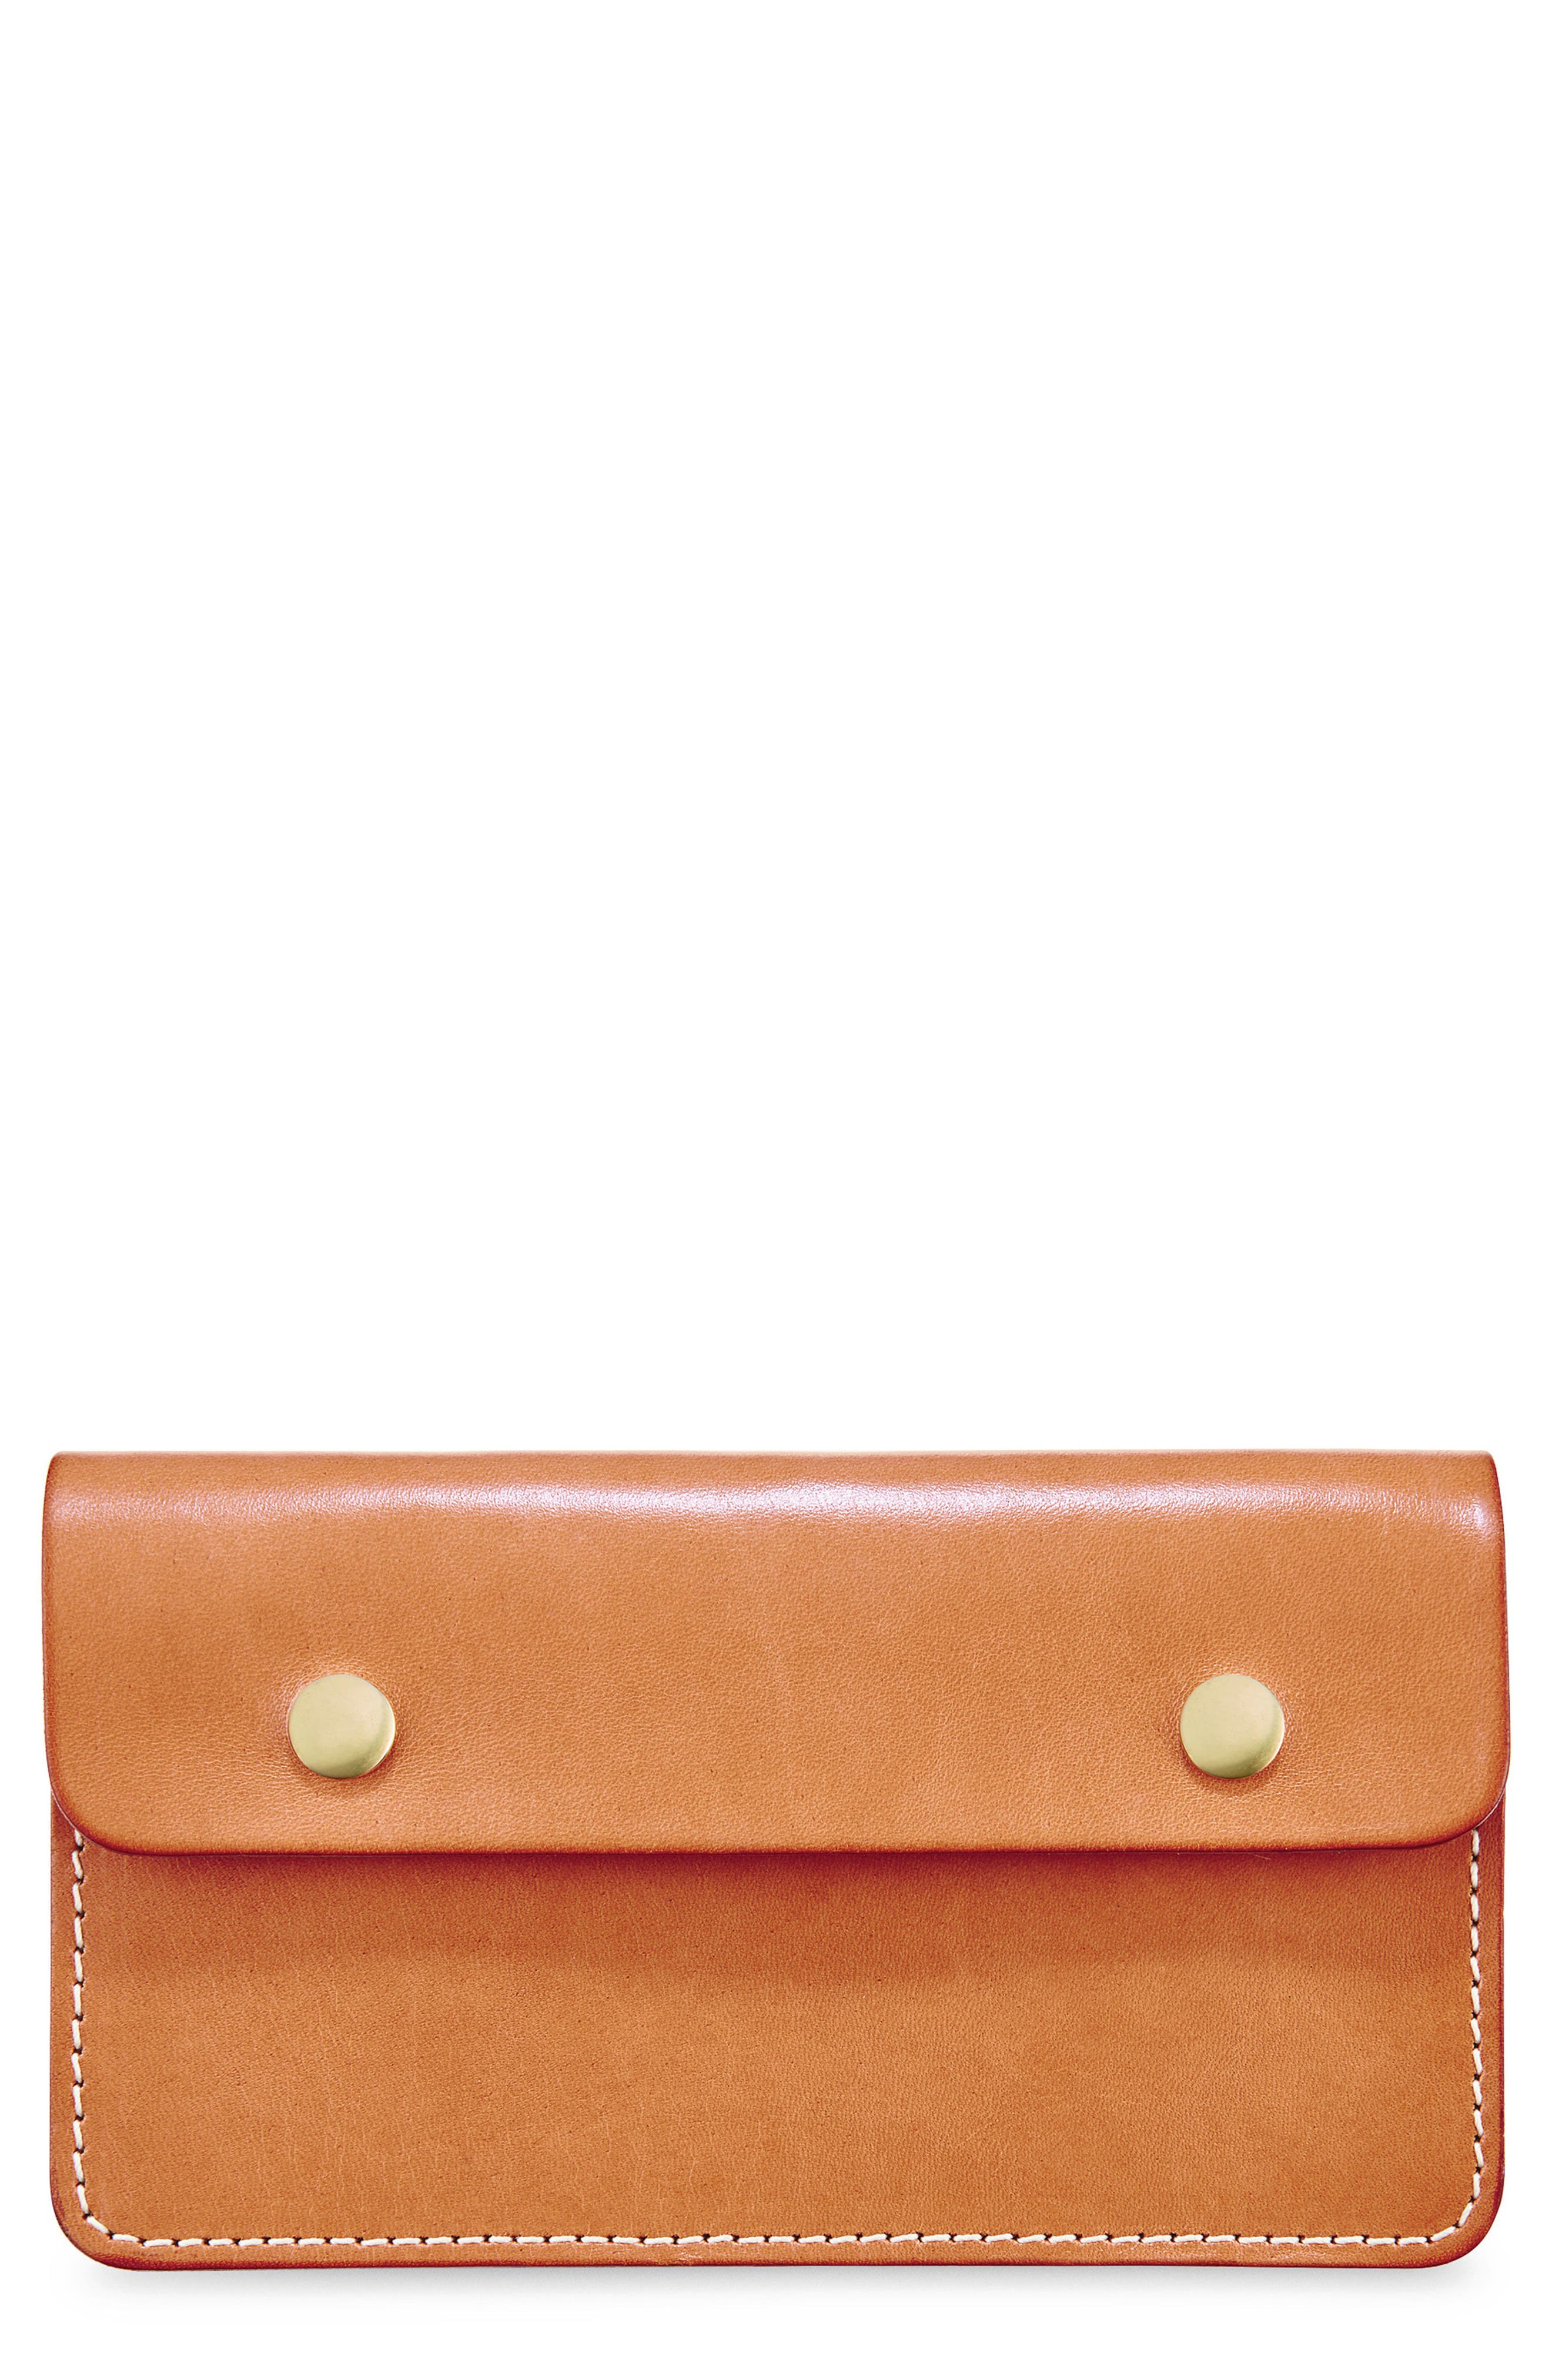 Leather Trucker Wallet,                             Main thumbnail 1, color,                             TANNED VEGETABLE